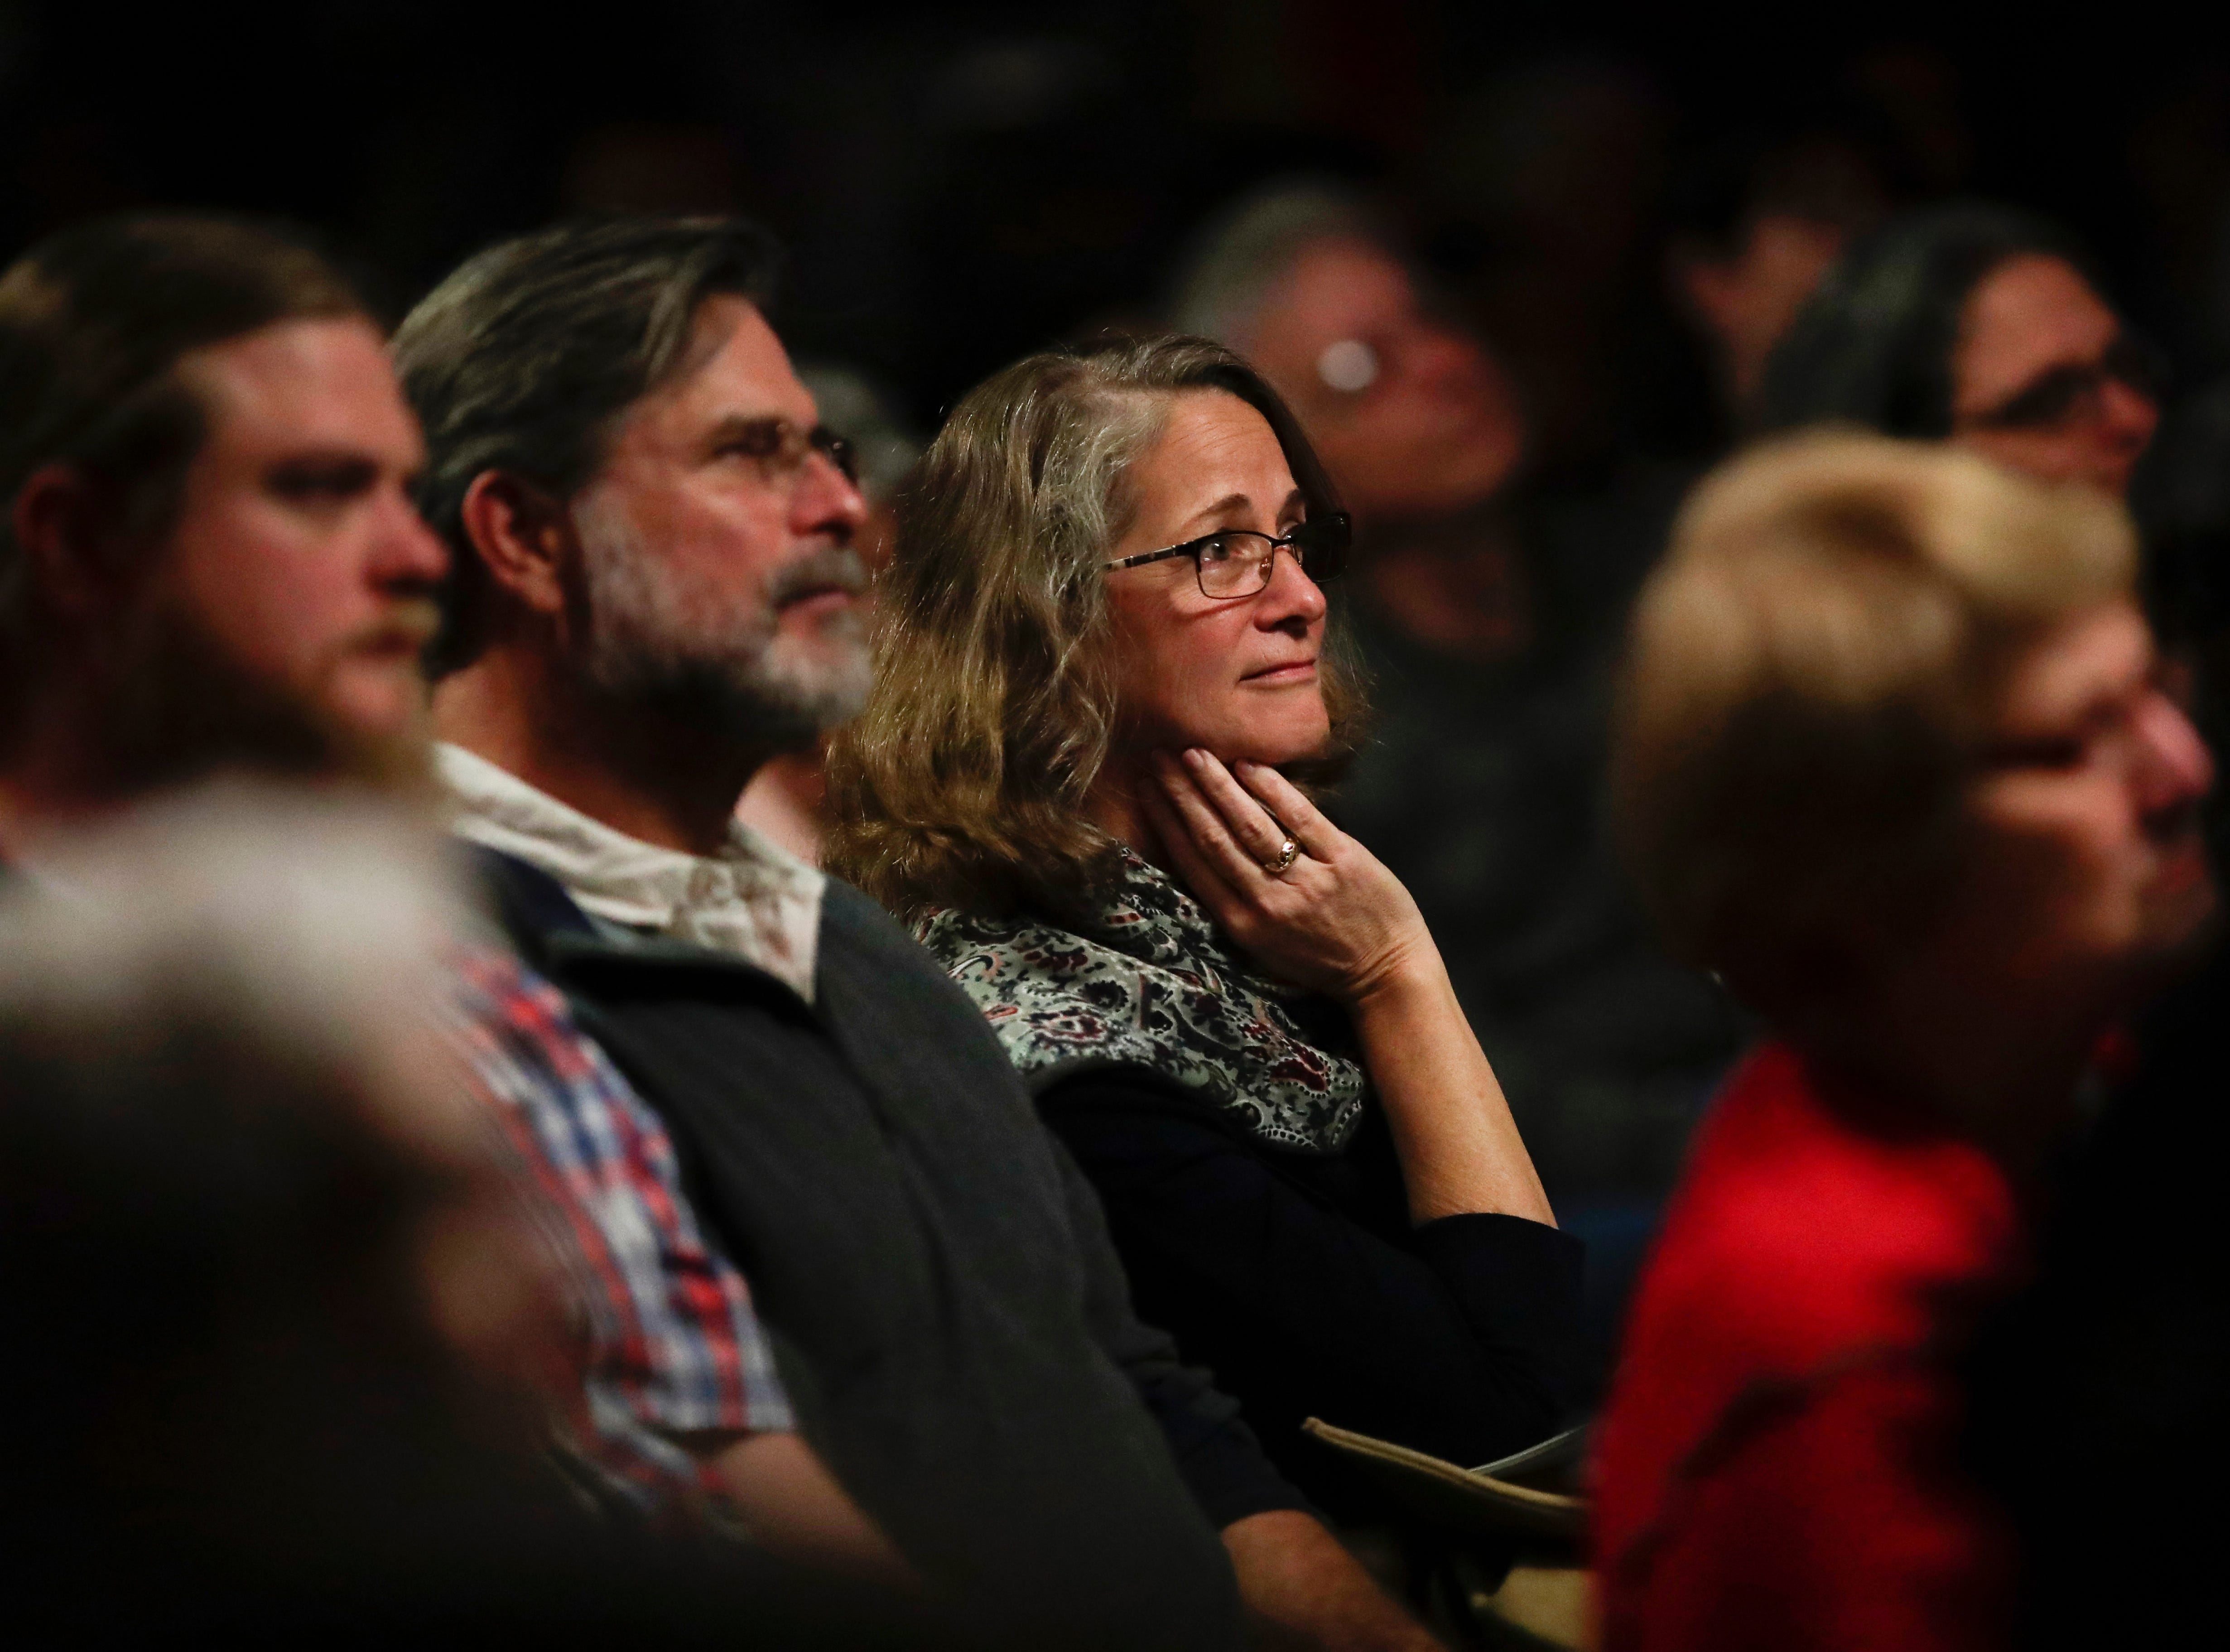 "Members of the crowd listen as stories are shared during the Storytellers event ""In the Blink of an Eye: Stories of Tragedy, Triumph and Transformation"" at the American Legion Post 13 in Tallahassee Friday, Nov. 30, 2018."